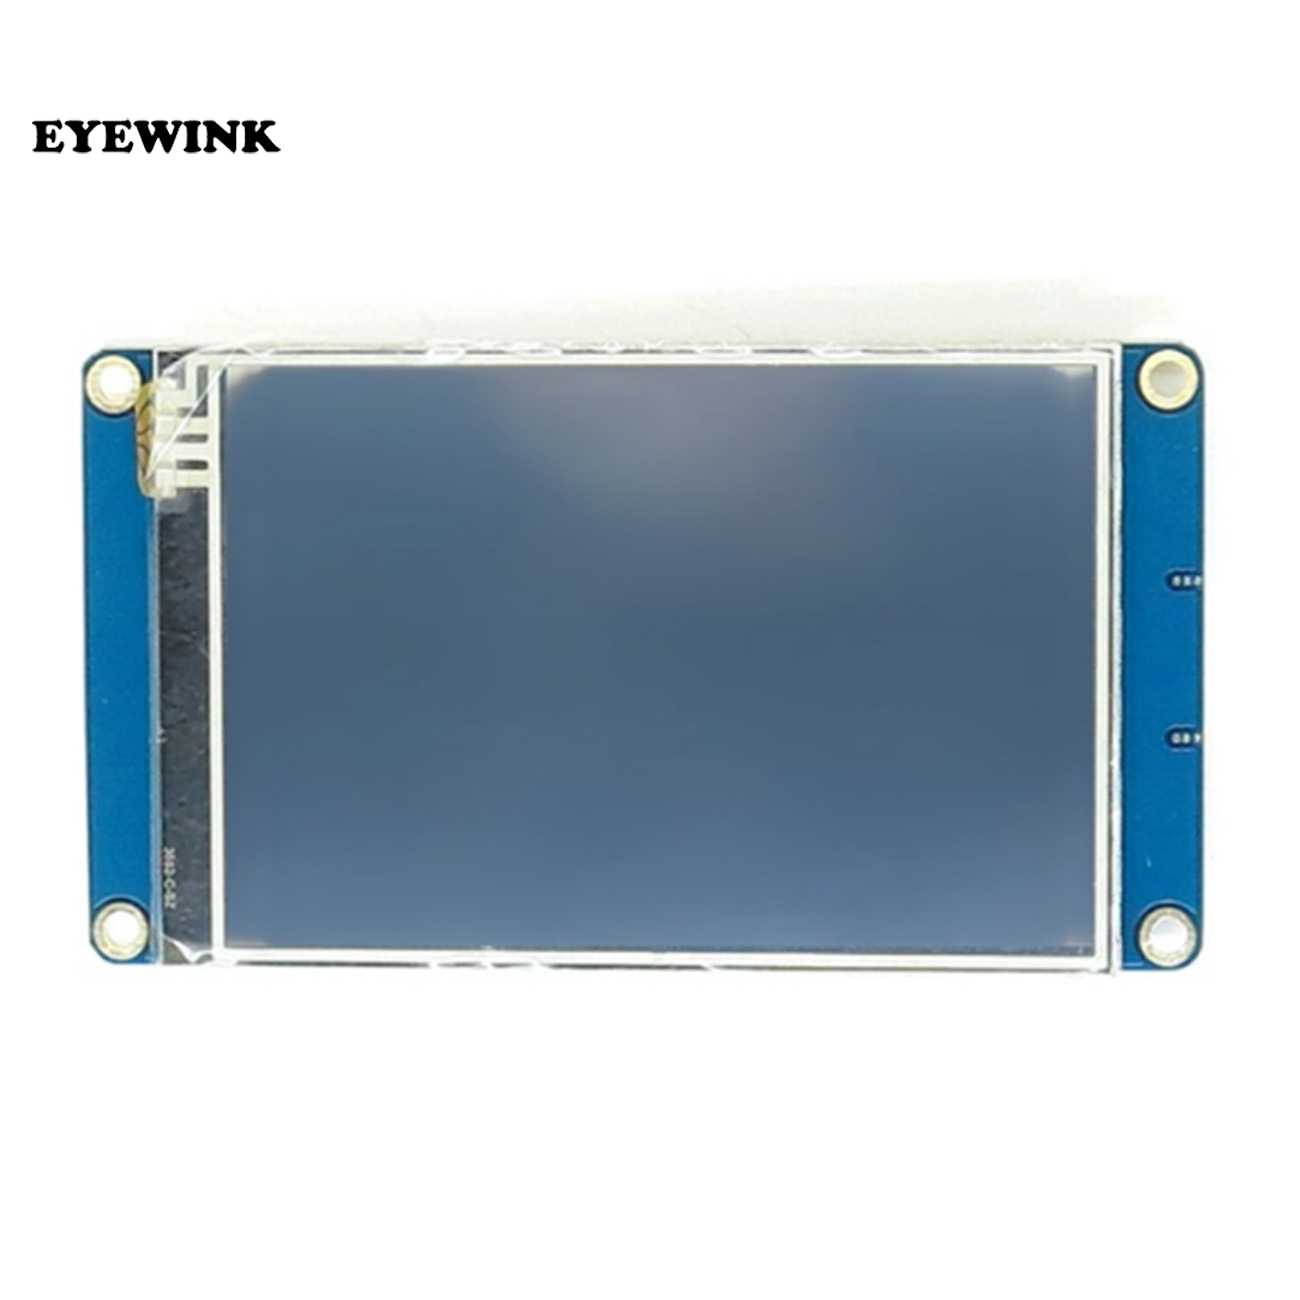 "EYEWINK 3.5"" Nextion HMI Intelligent Smart USART UART Serial Touch TFT LCD Module Display Panel For Raspberry Pi 3"